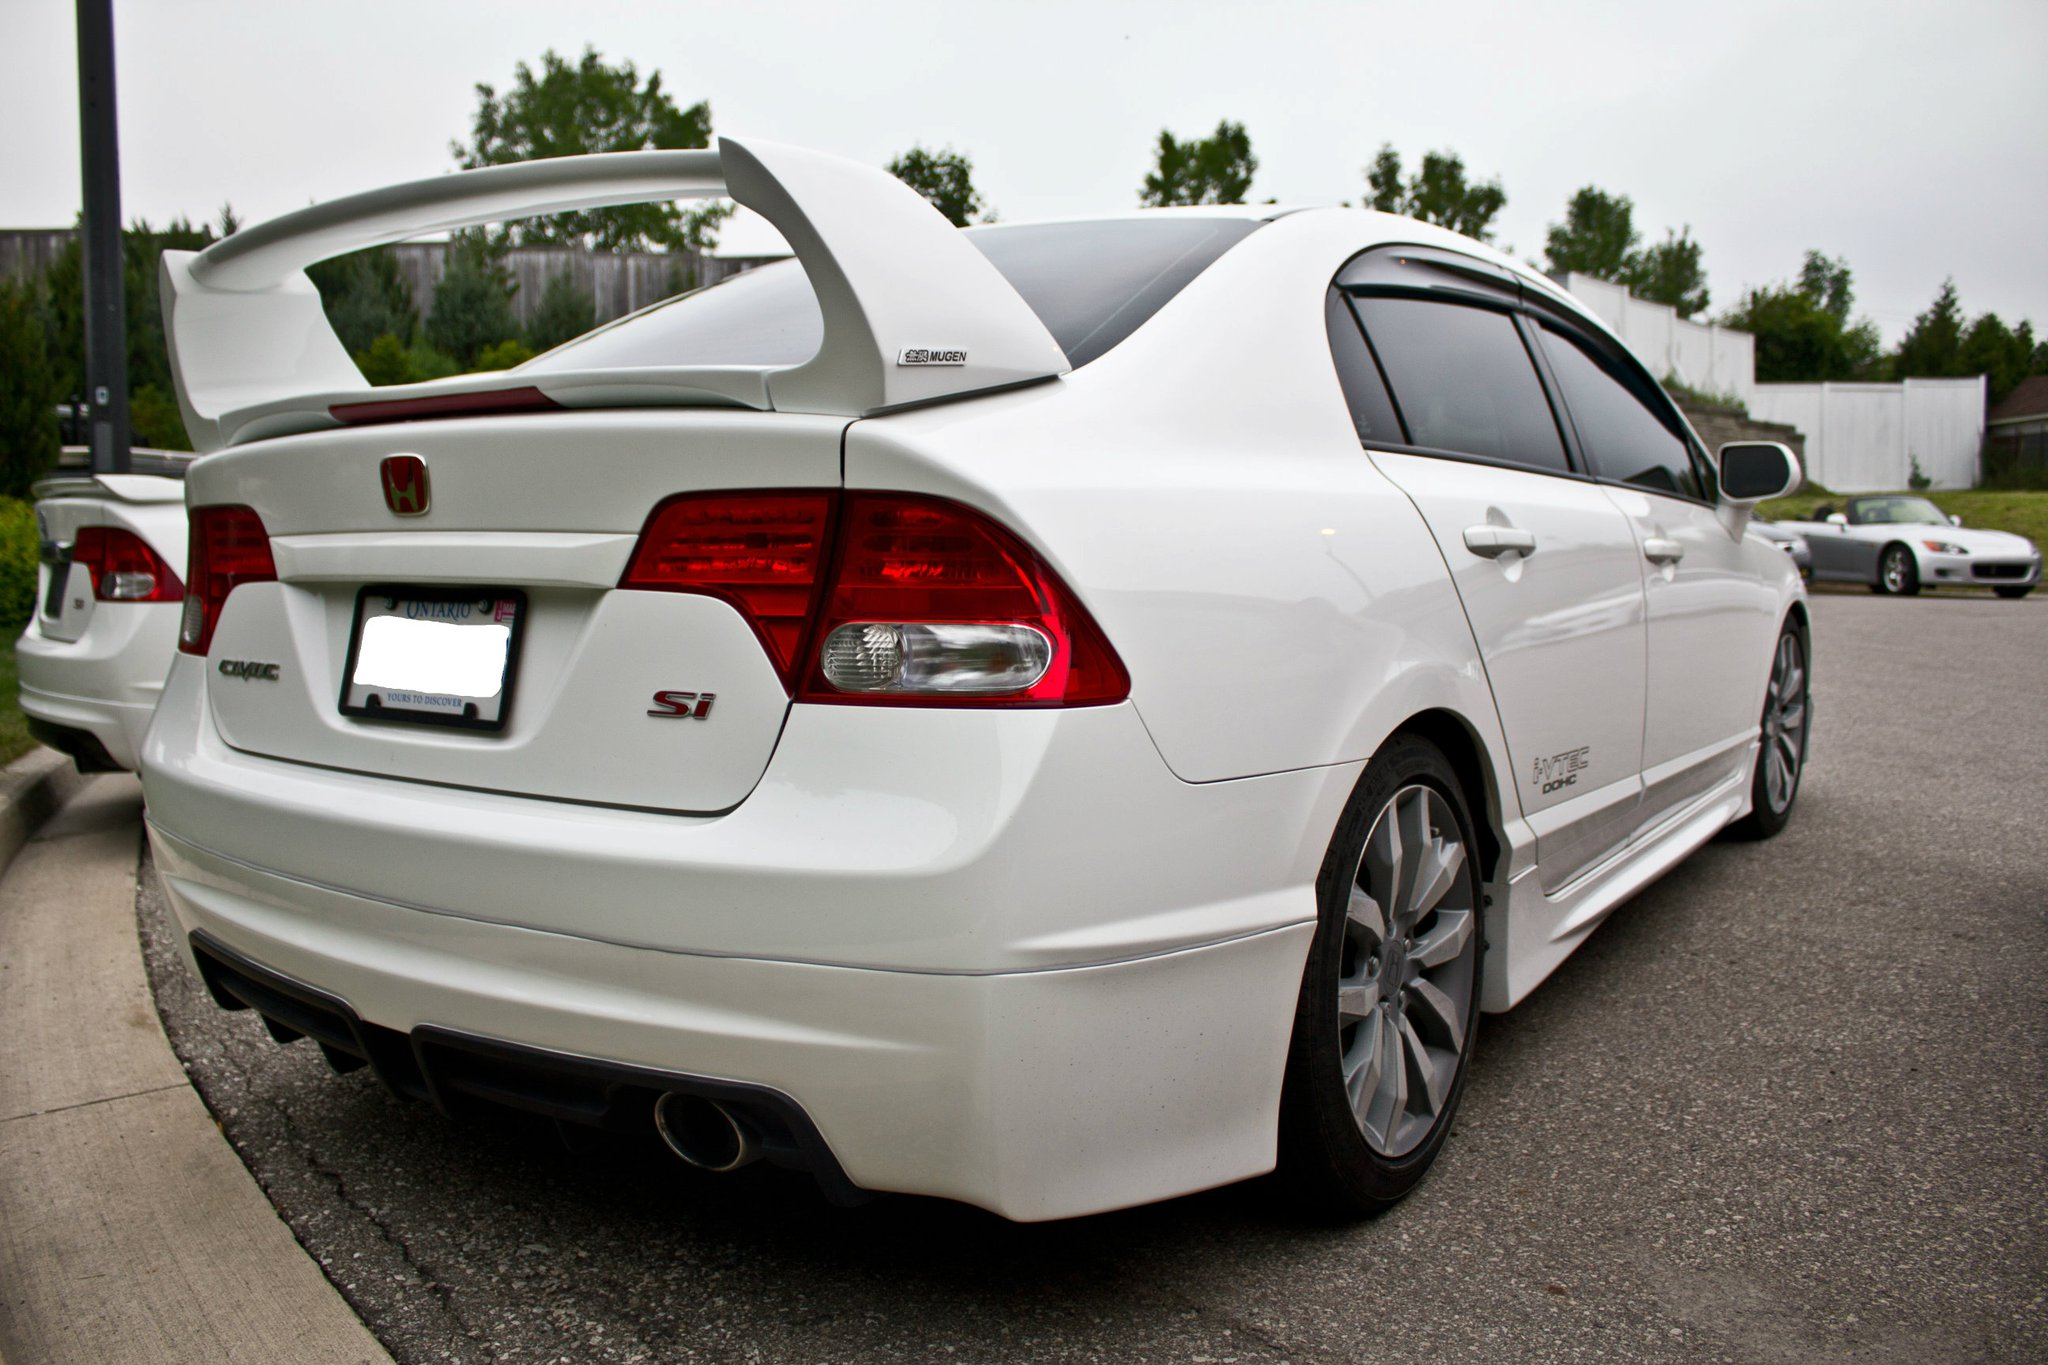 Mugen SI style spoiler FRP material with 3rd brake light